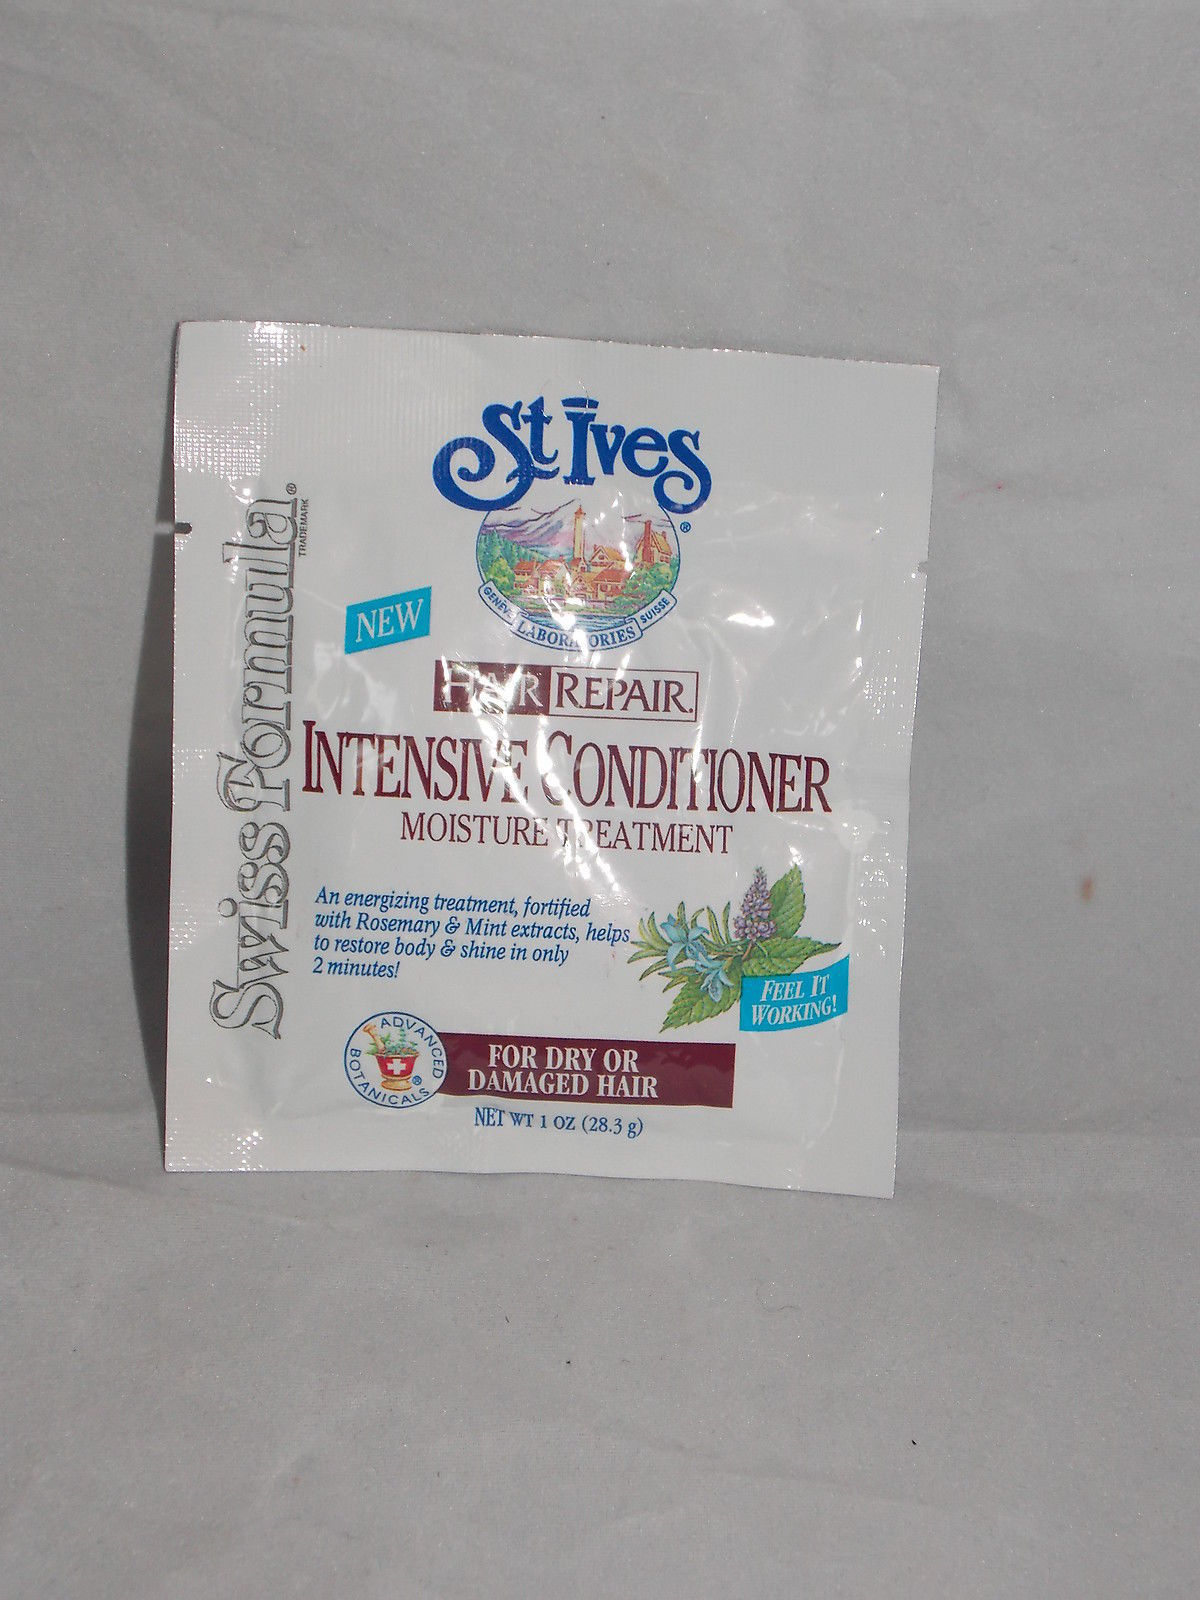 St. ives shampoo and conditioner